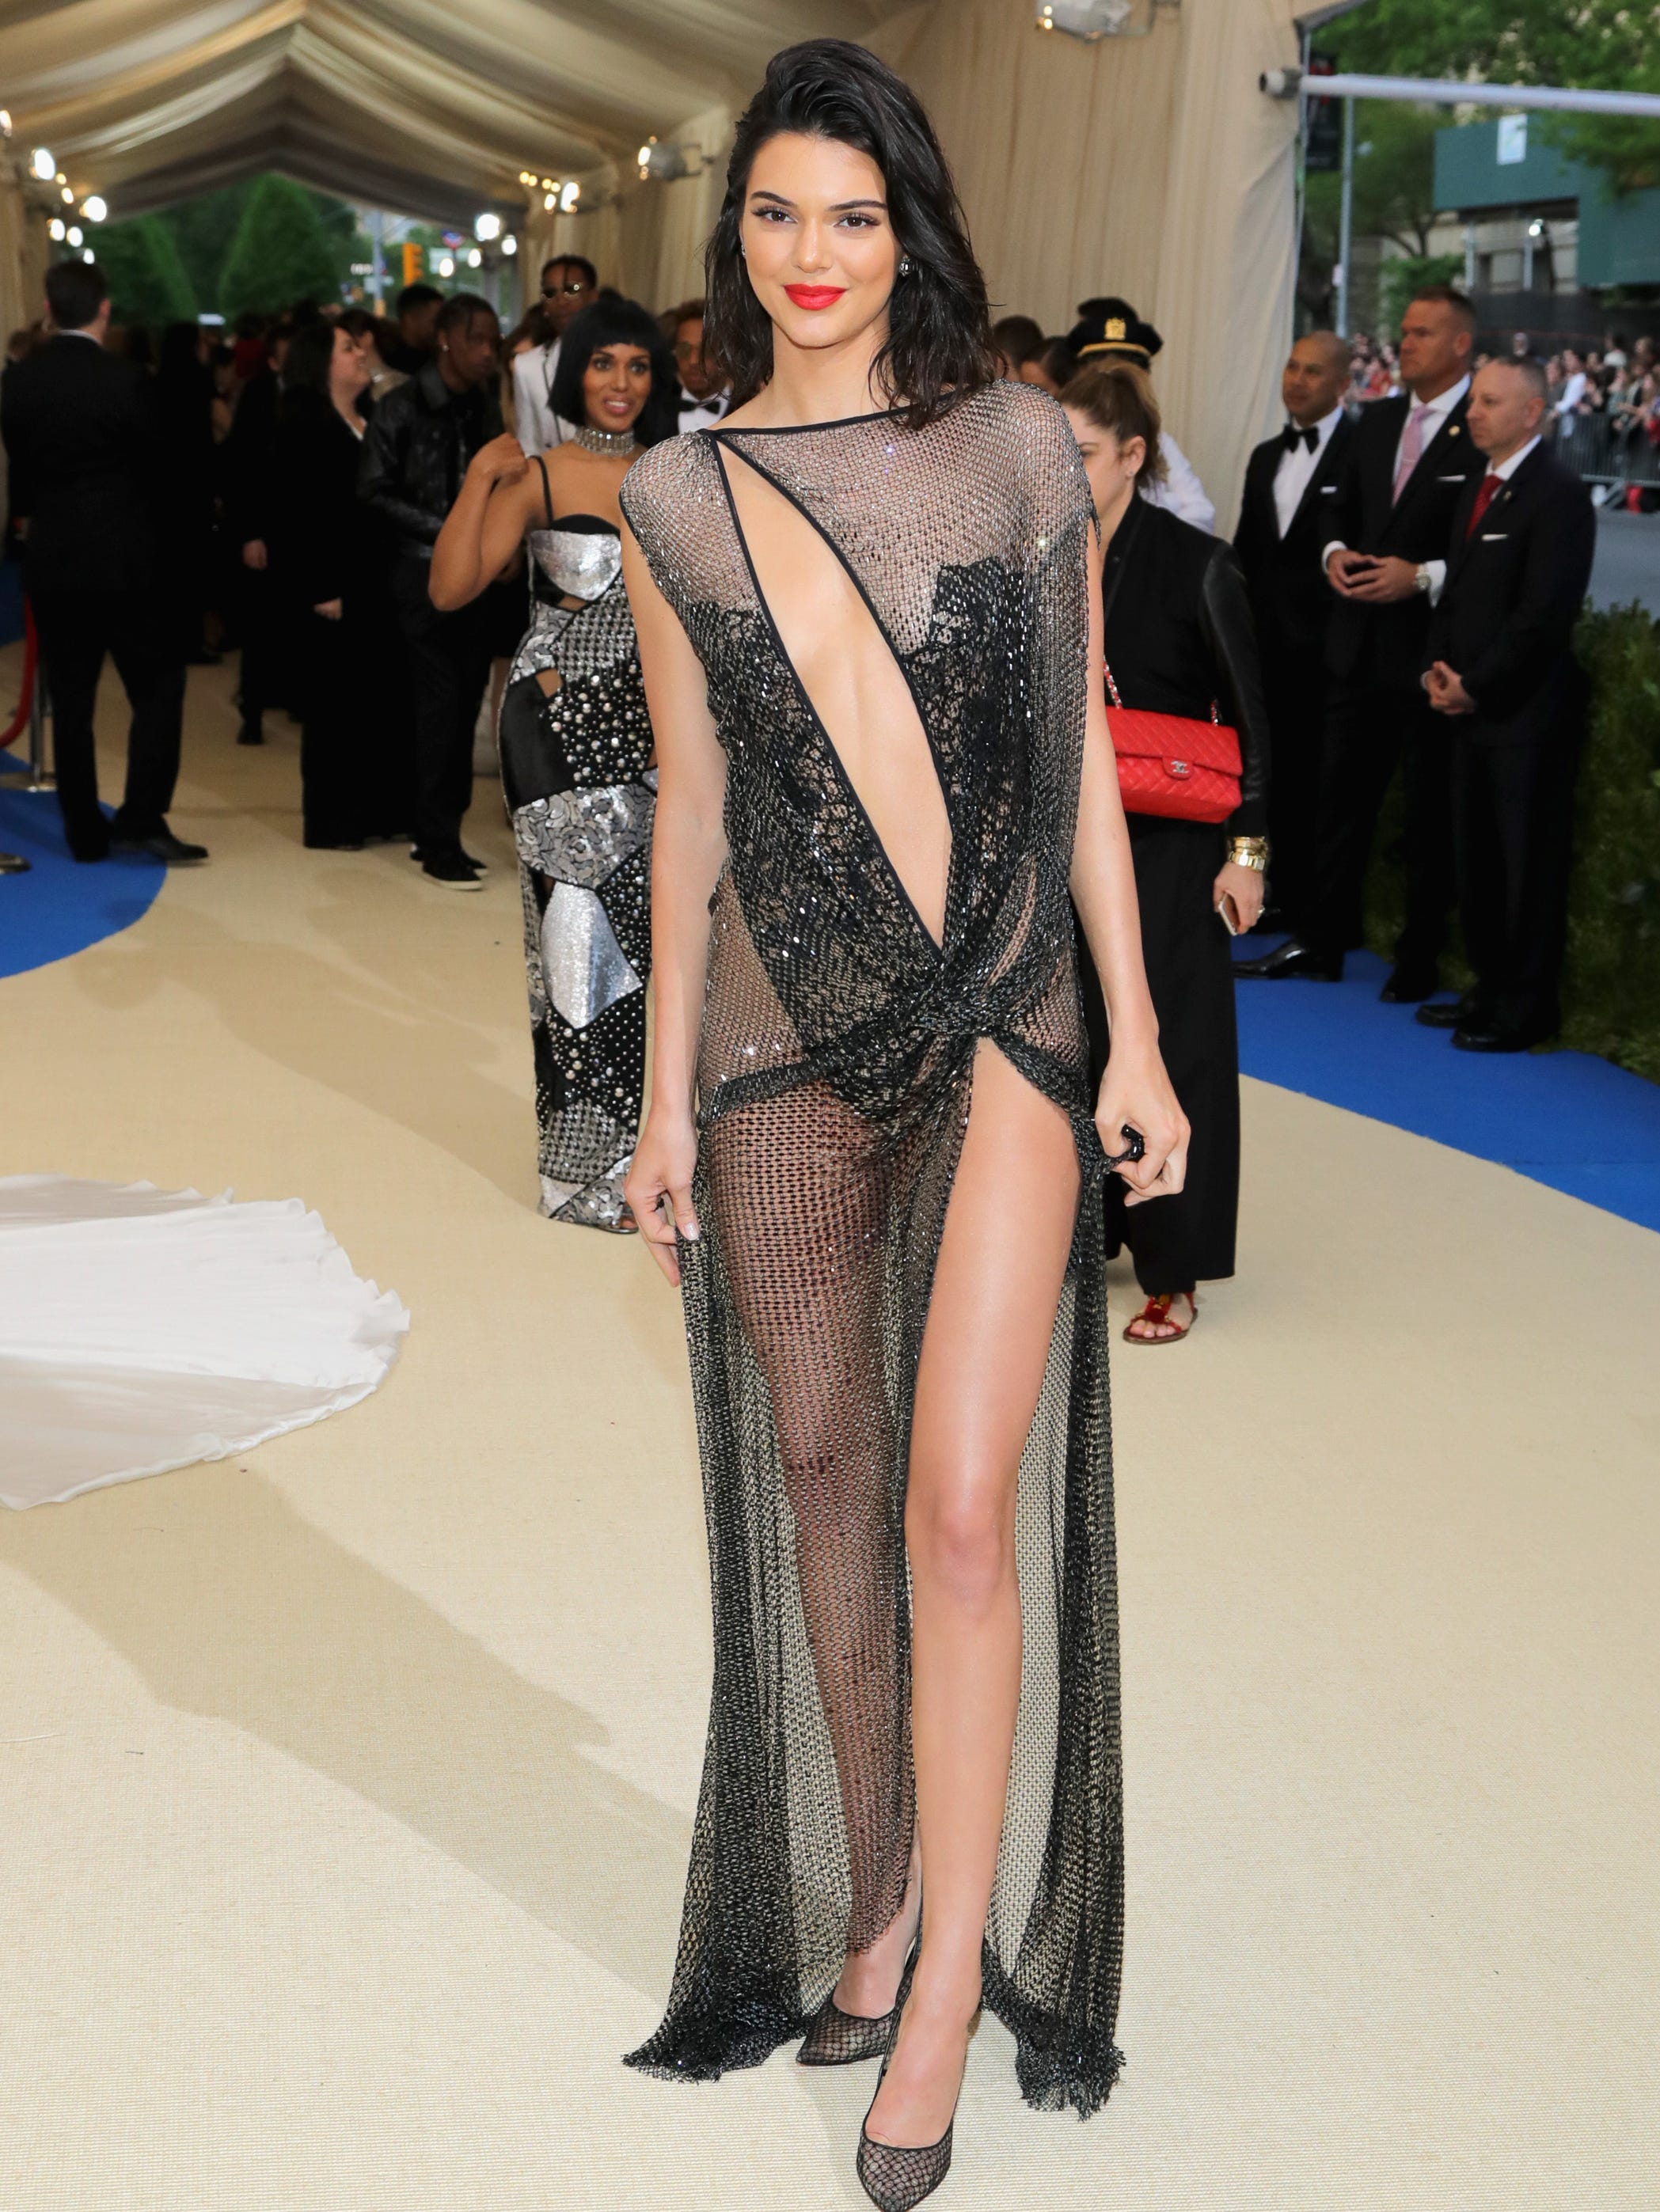 The time Kendall Jenner wore a visible thong to the Met Gala